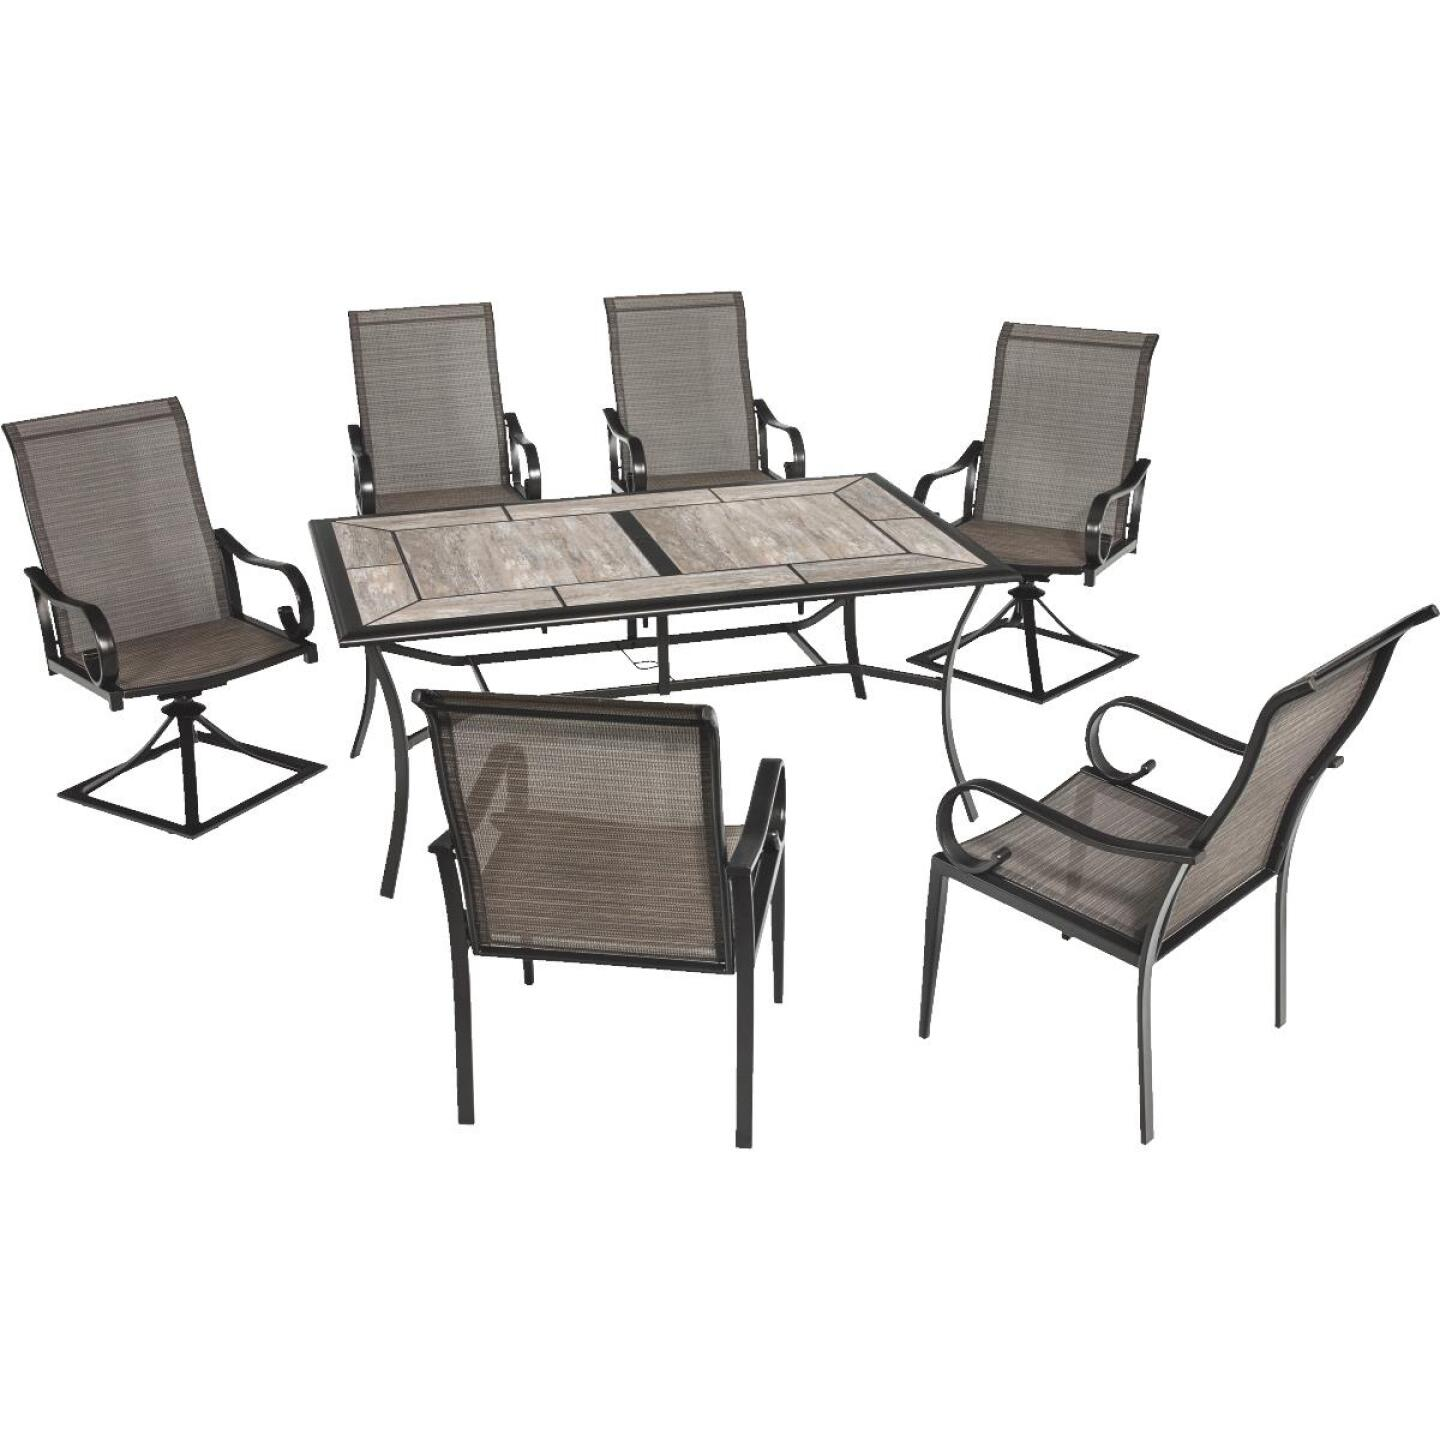 Outdoor Expressions Berkshire 7-Piece Dining Set Image 248